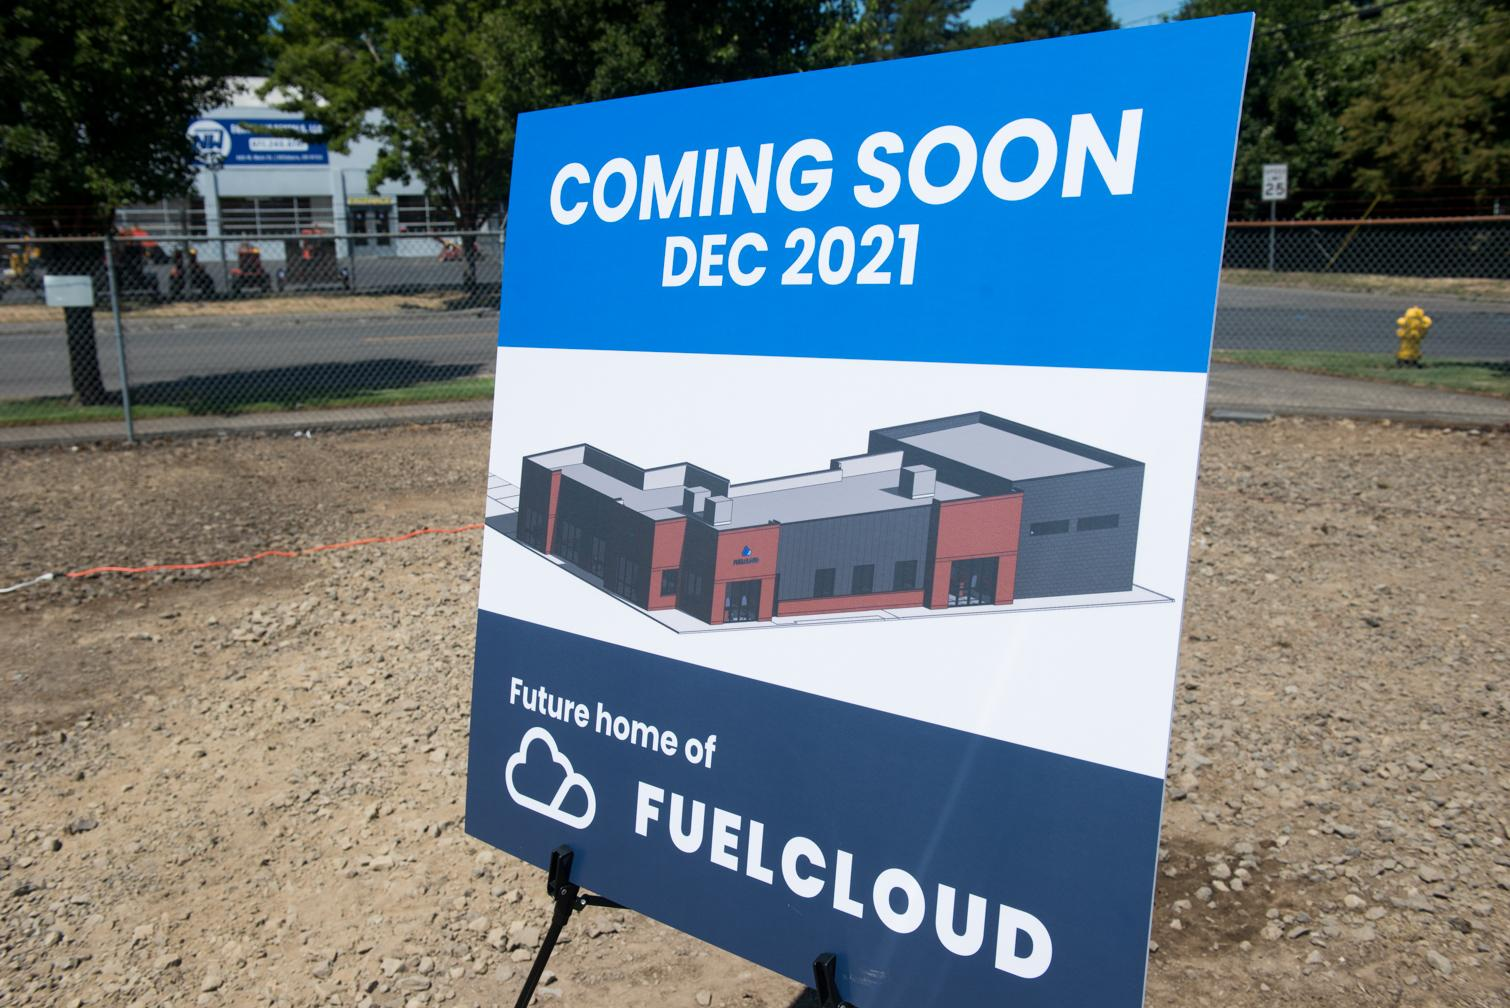 Poster showing what FuelCloud's office will look like.